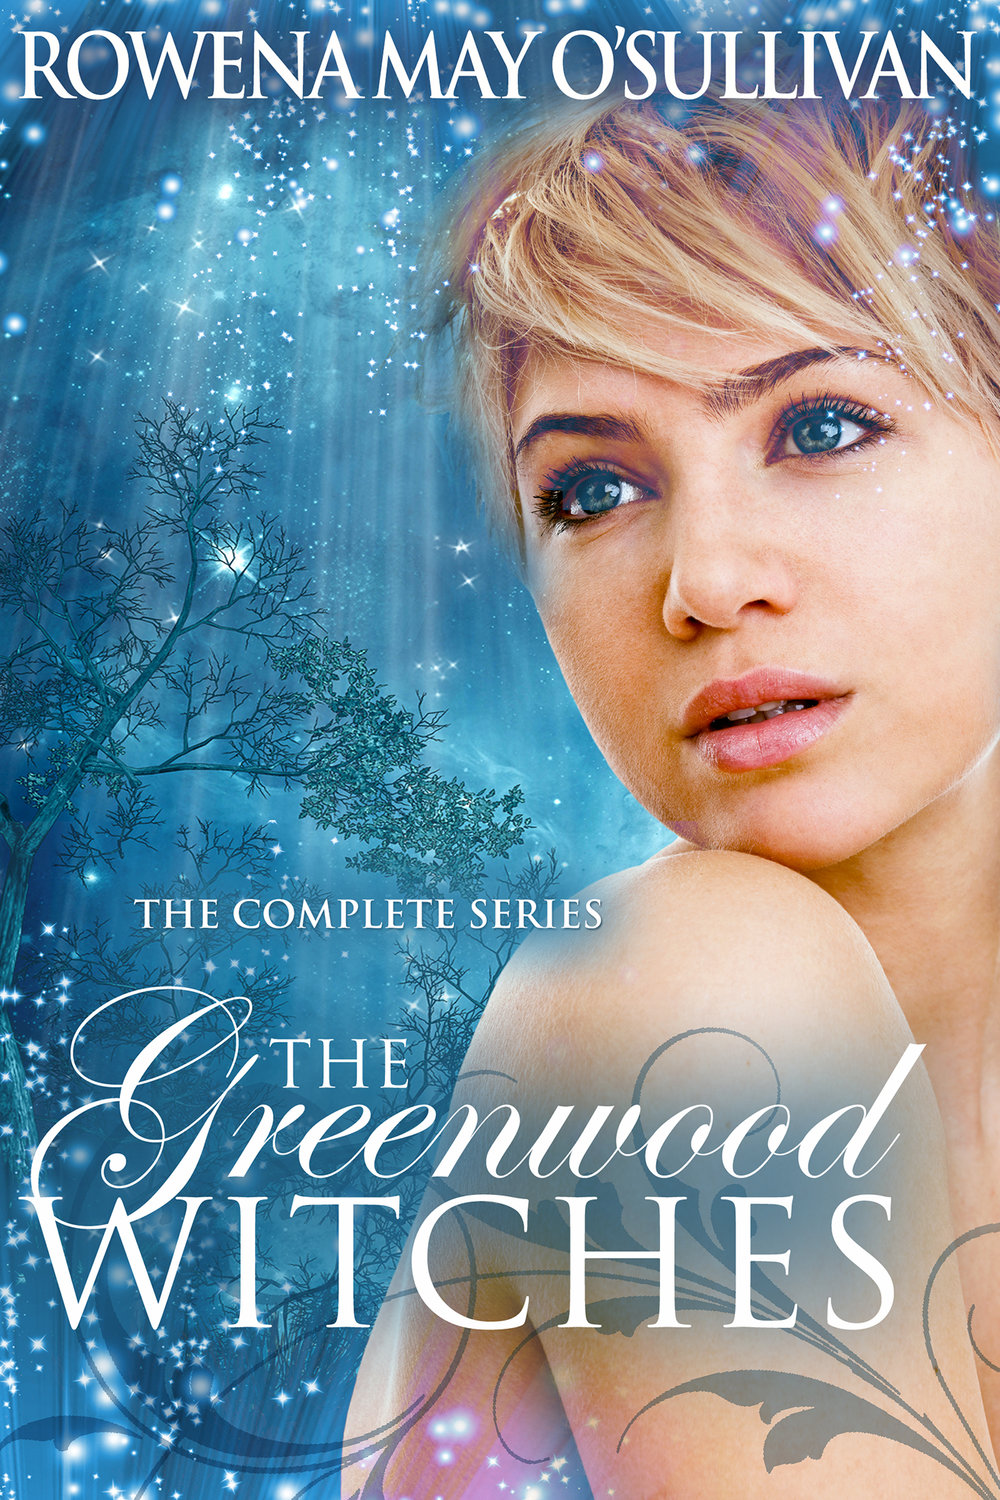 Greenwood Witches Trilogy - author Rowen May O'Sullivan